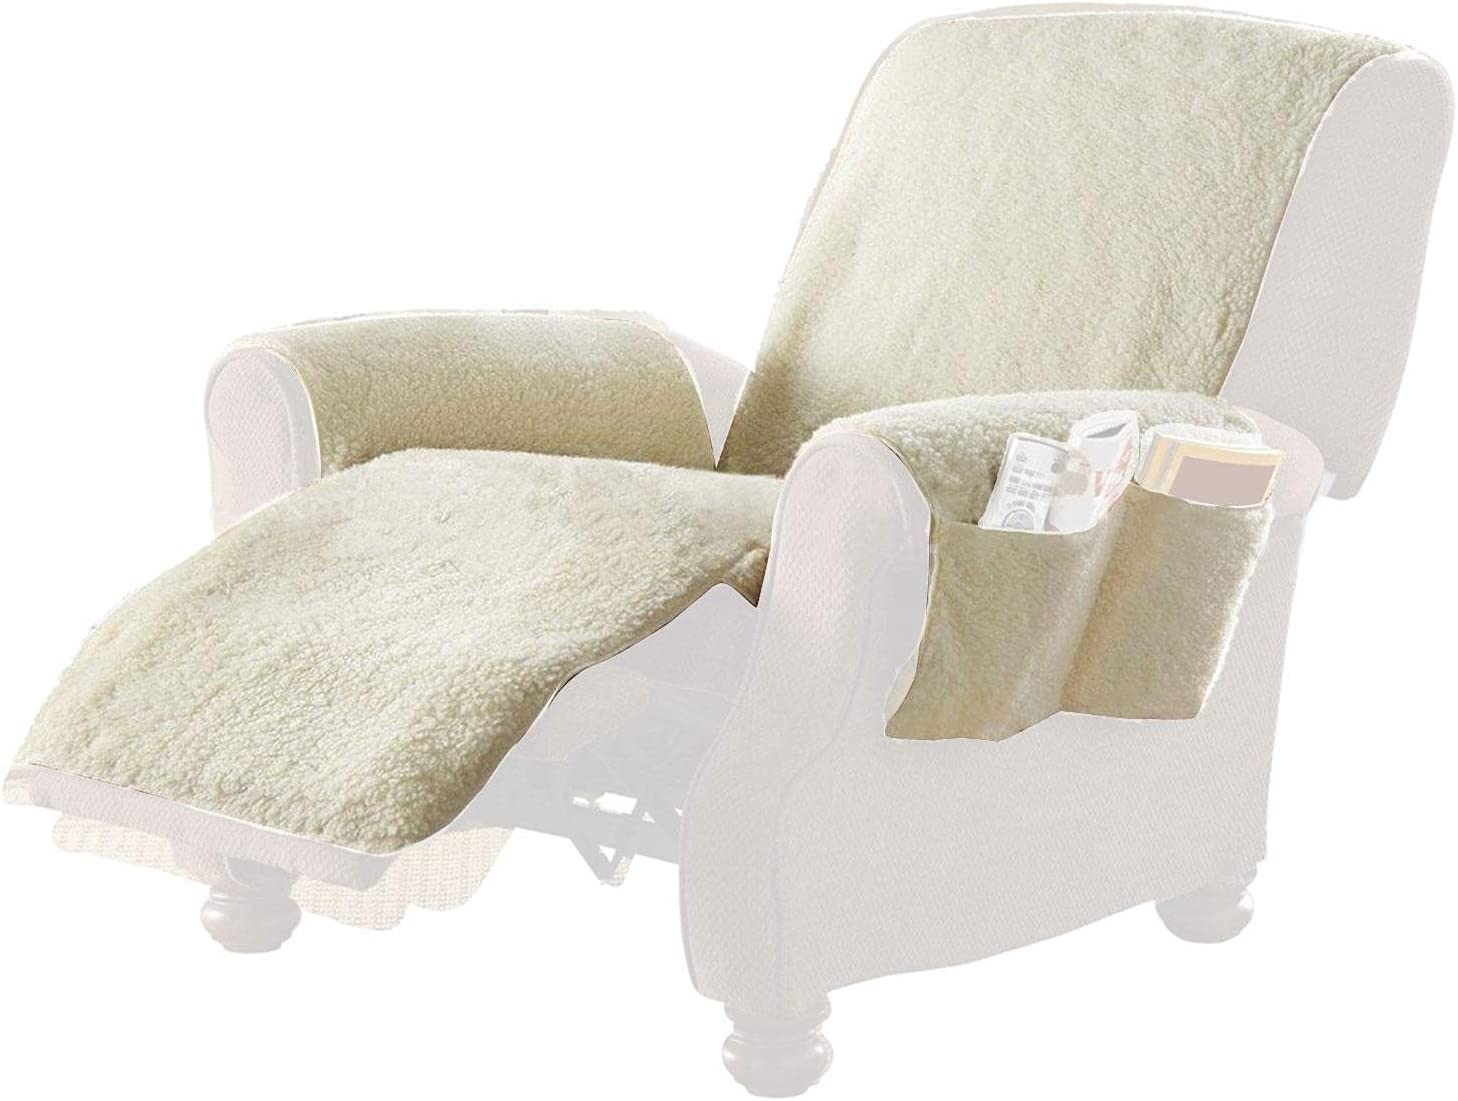 Williamly Philadelphia Mall Plush Quilted Recliner Comfortable New products world's highest quality popular Covers Co